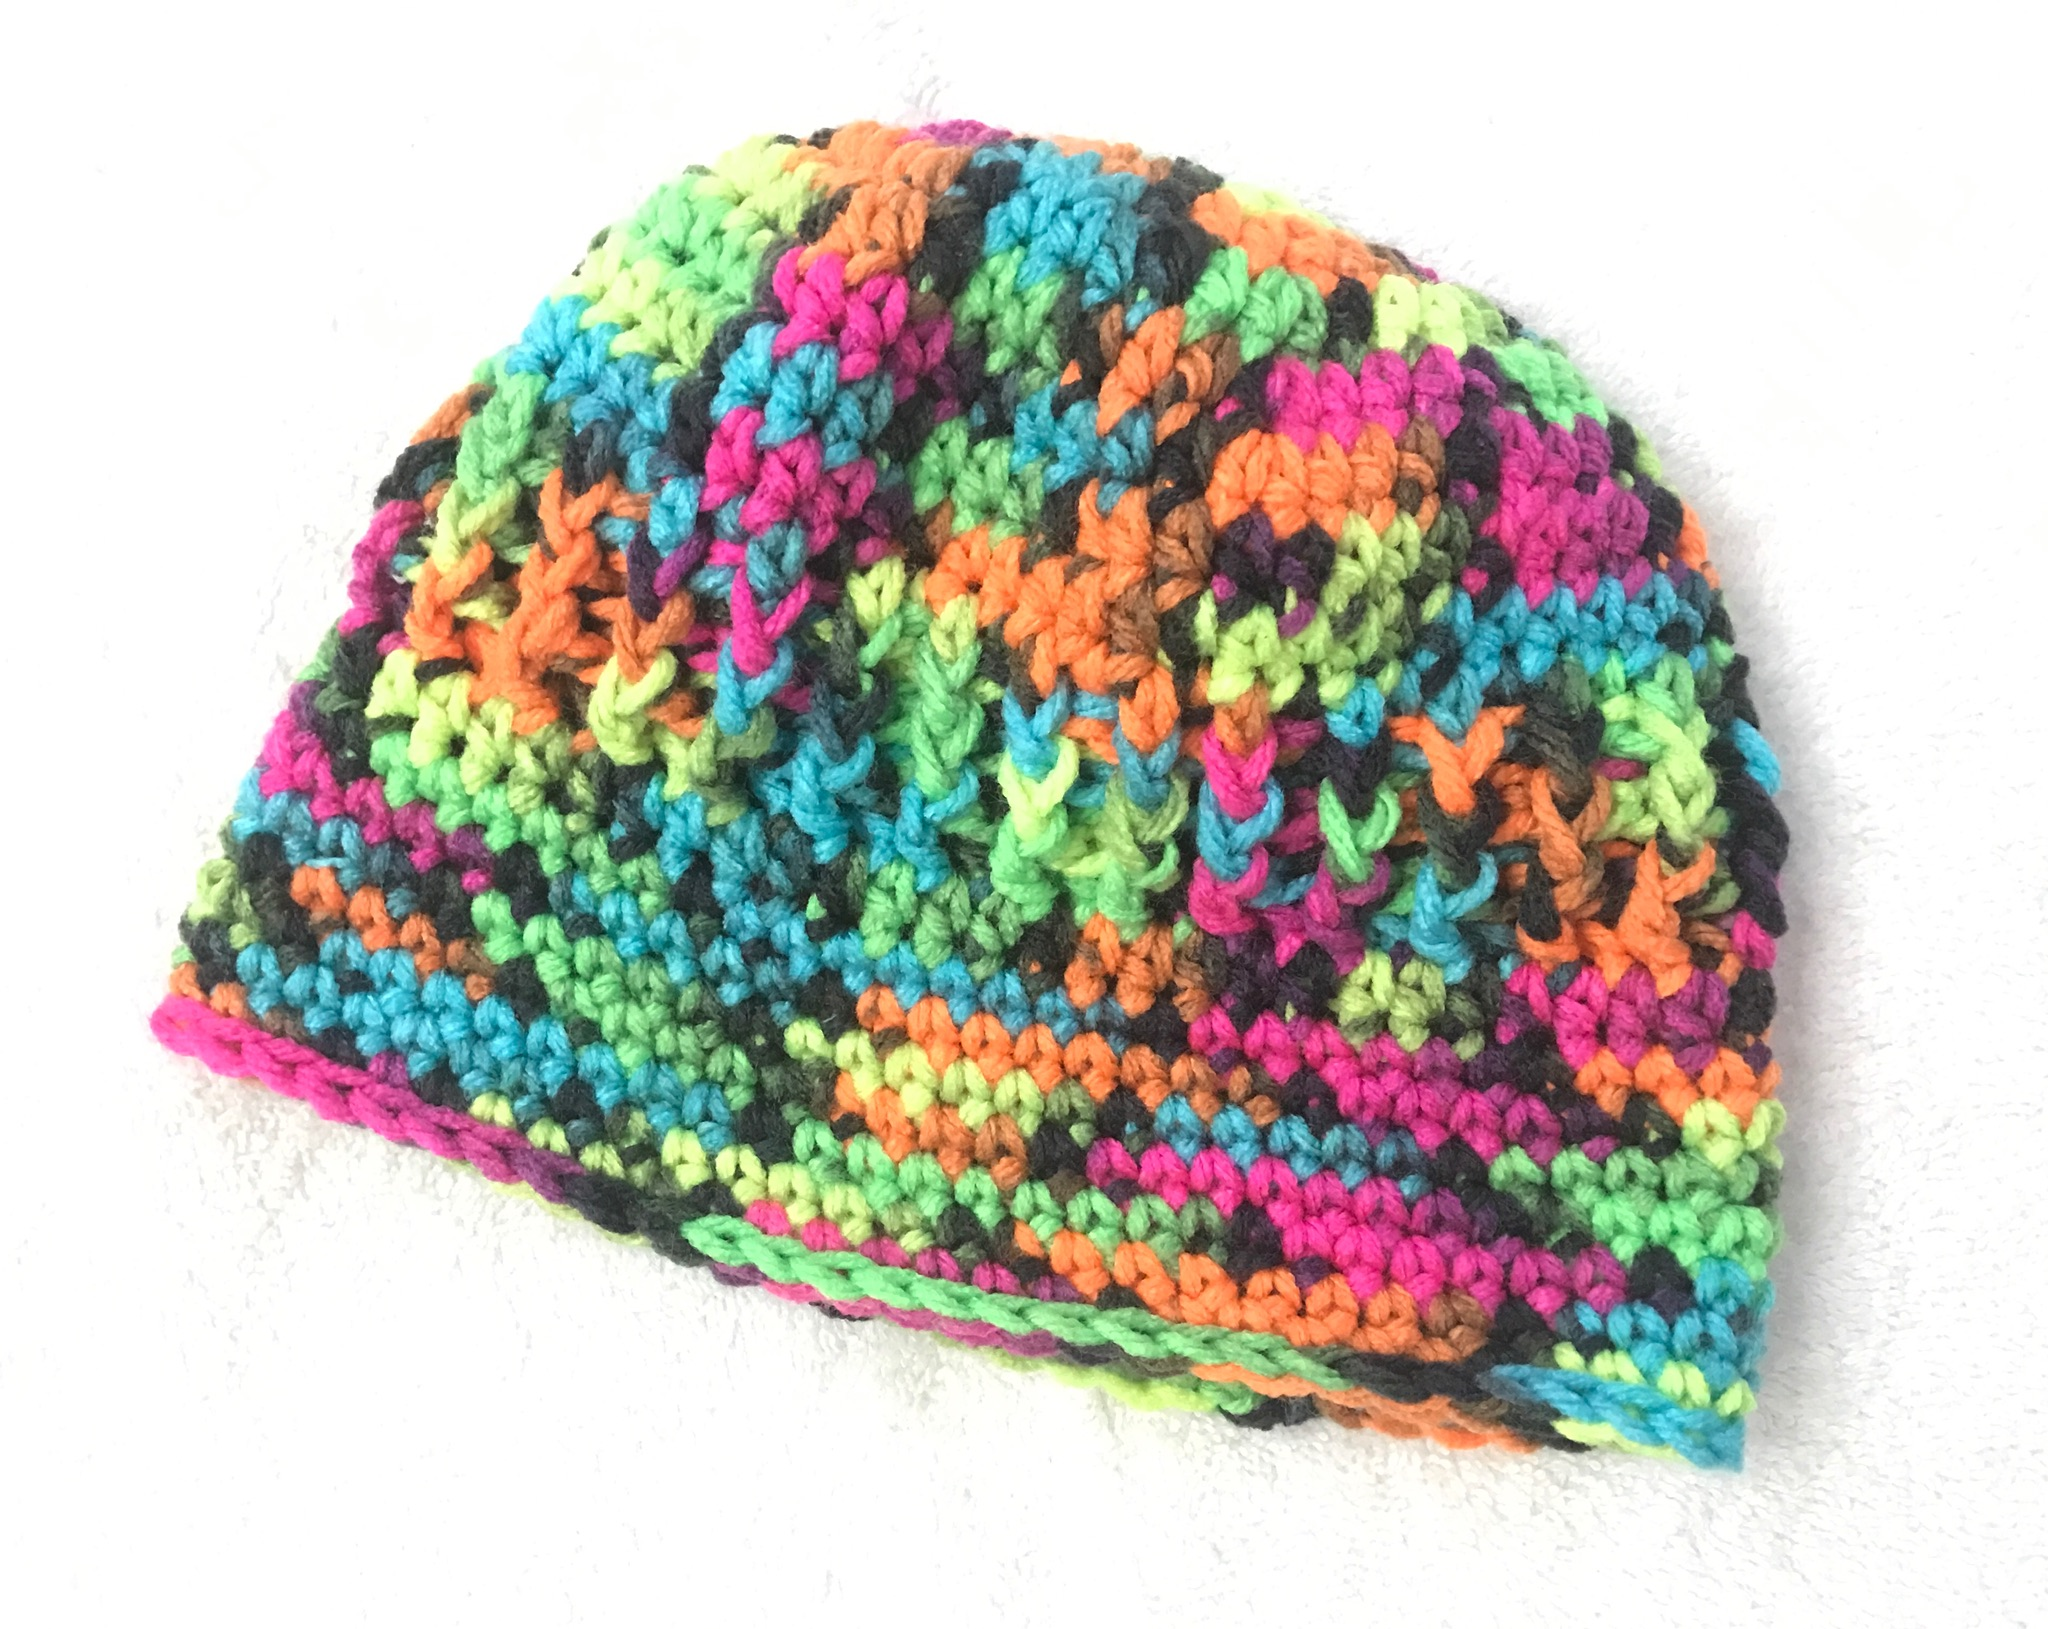 Don't you love the bright colors? What a fun way to use Red Heart Super Saver Blacklight Yarn for this crochet hat.